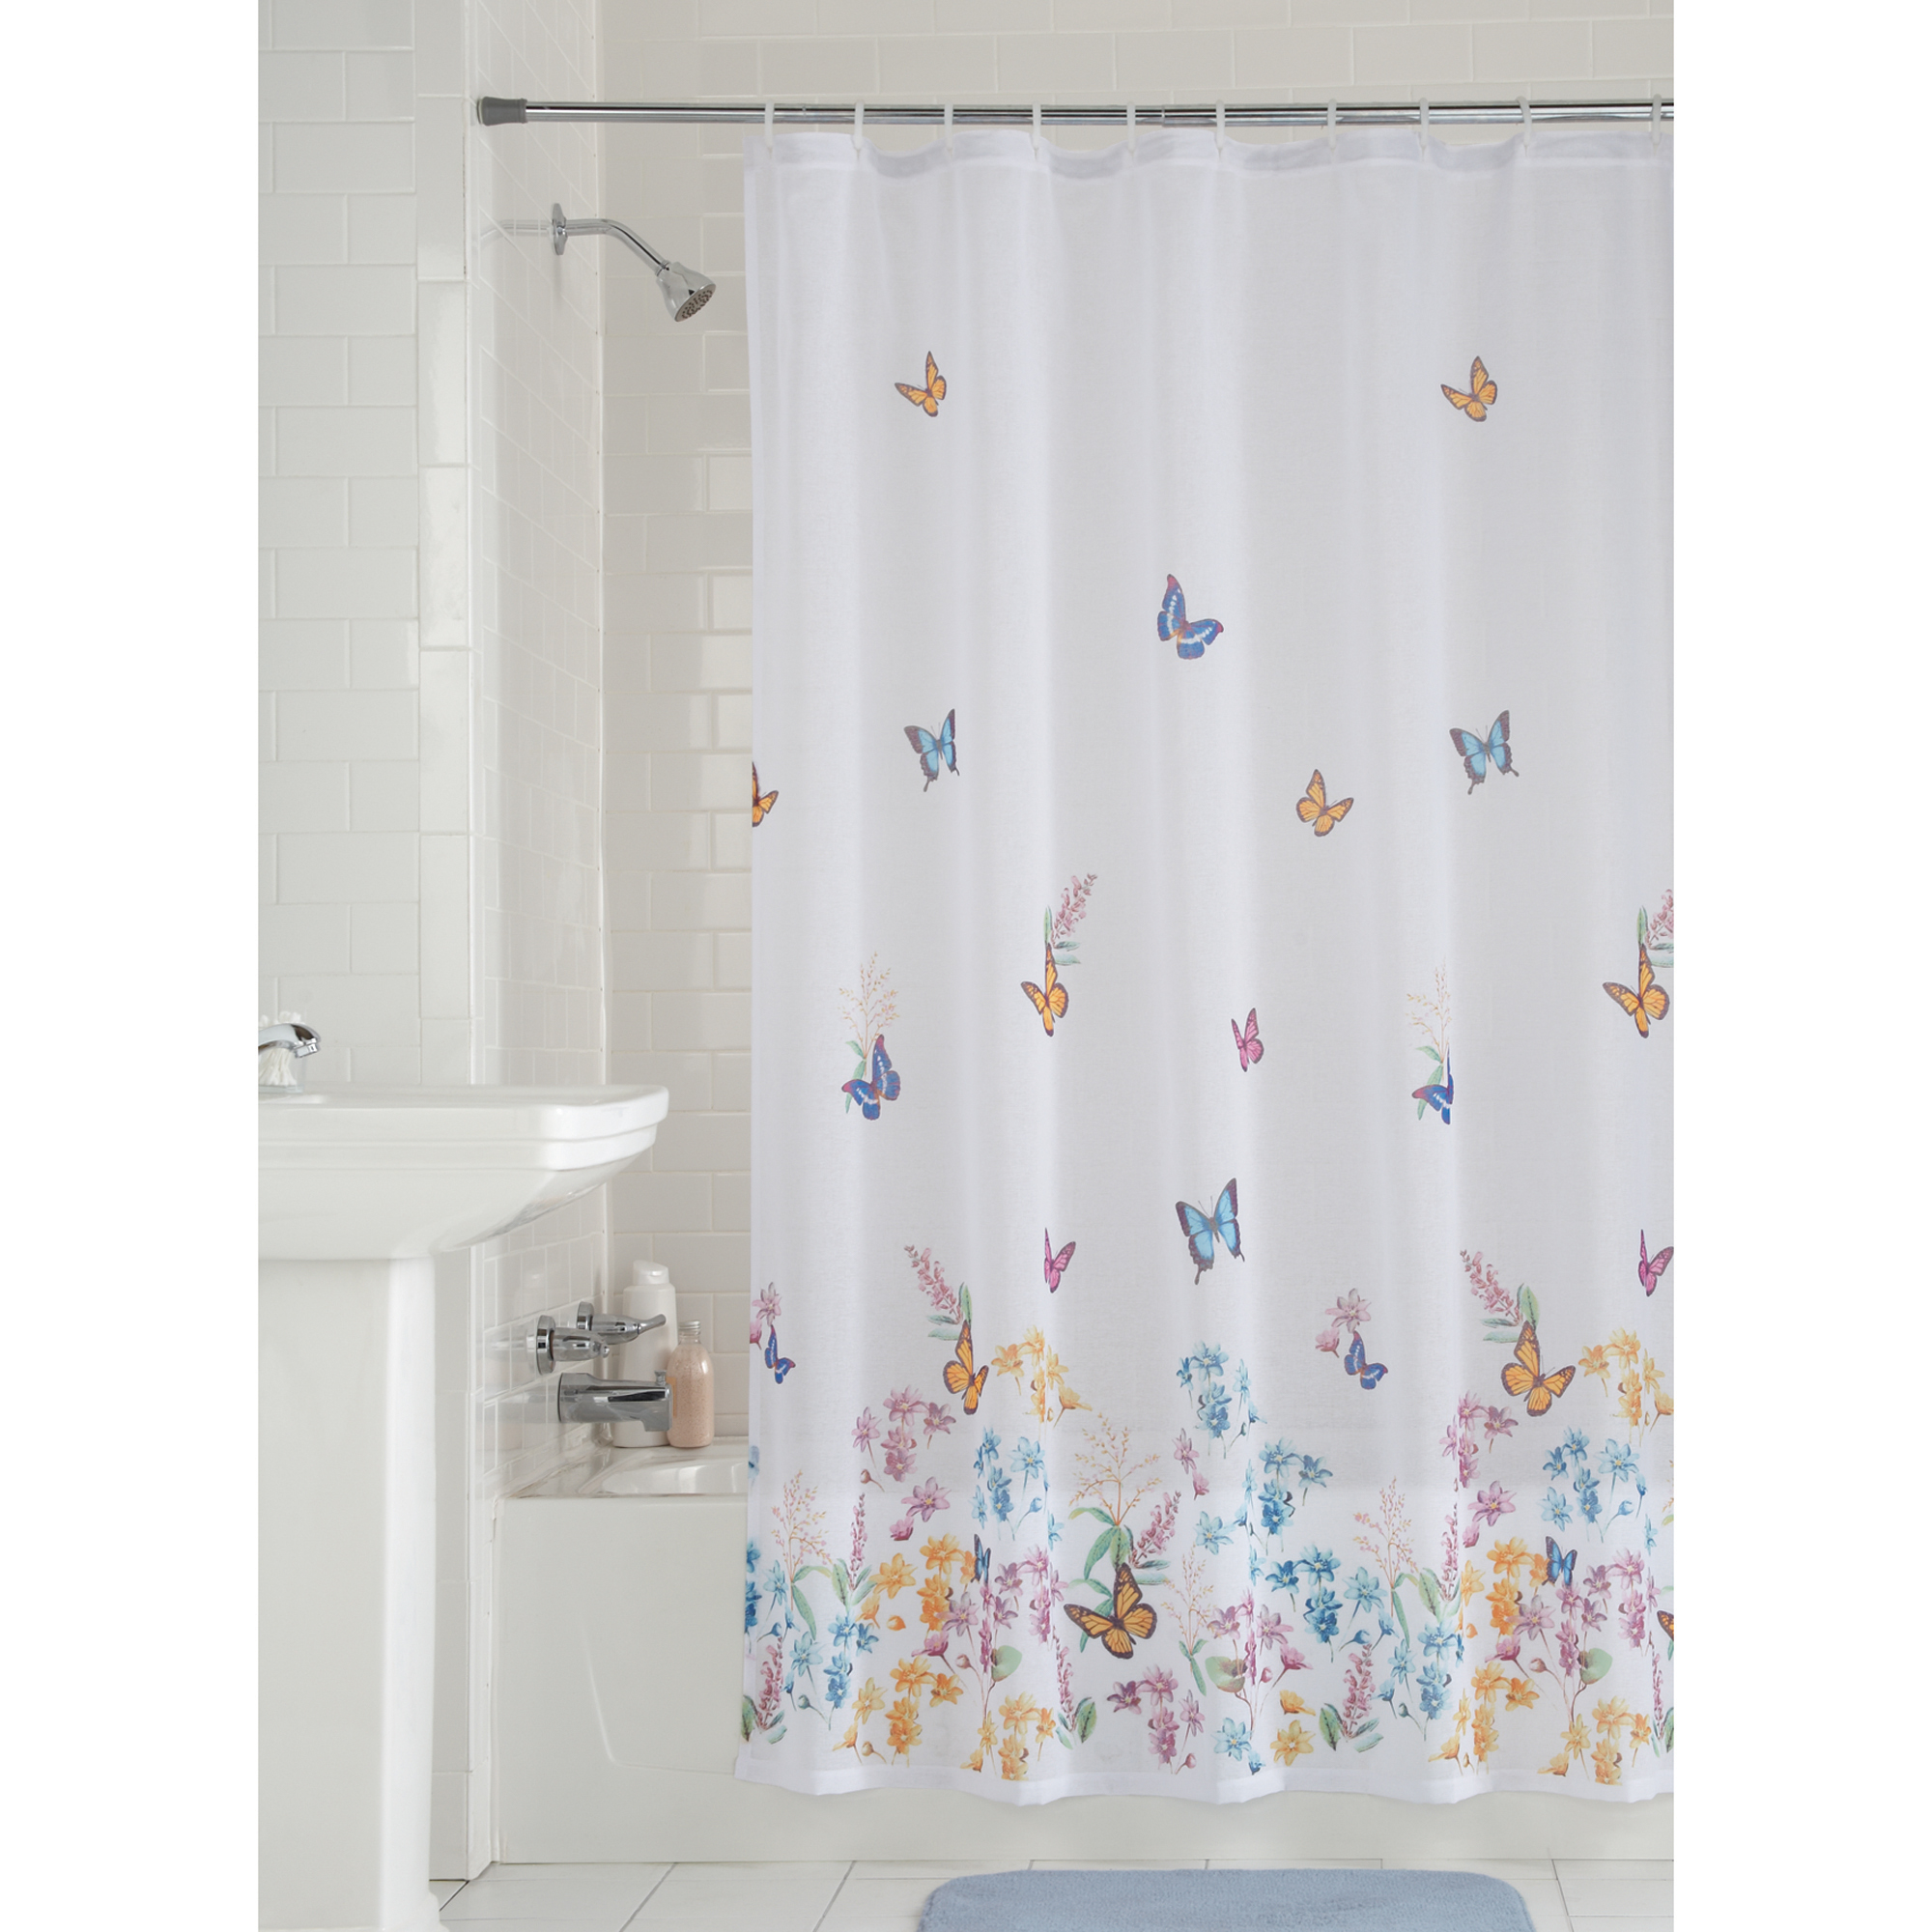 Horse Shower Curtain Fabric Bathroom Decor Set with Hooks 4 Sizes Available